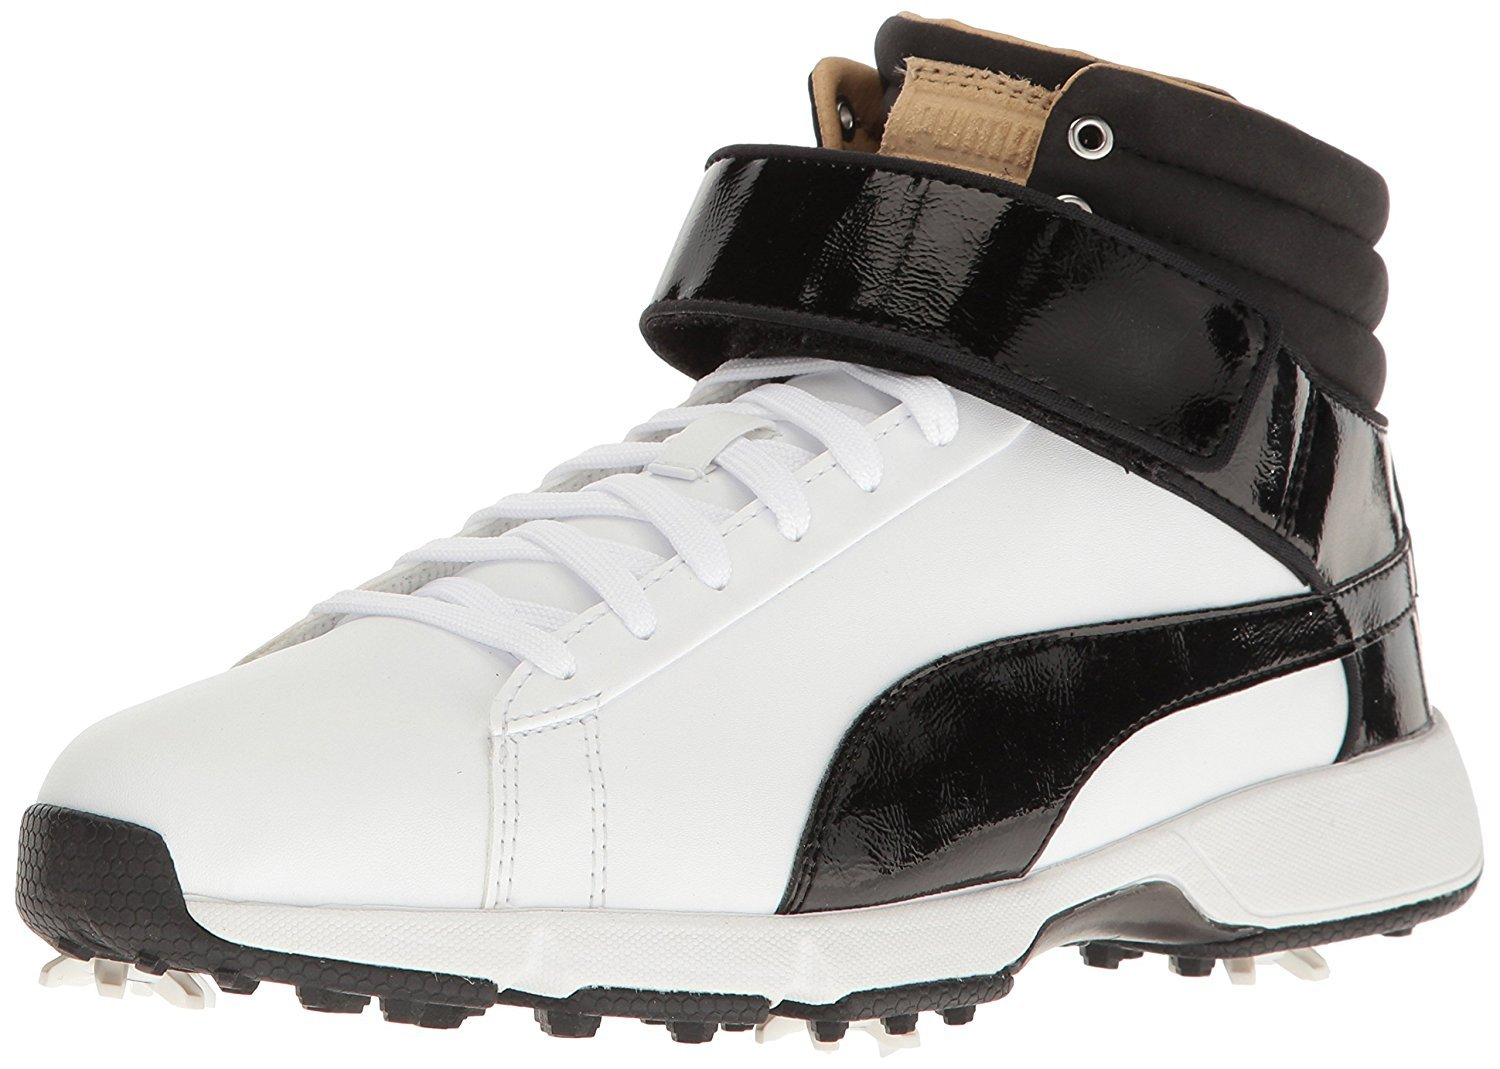 ad32213cec3 Puma Golf Kids  Titantour Hi-Top SE Jr. Golf Shoe — HowardsGolf